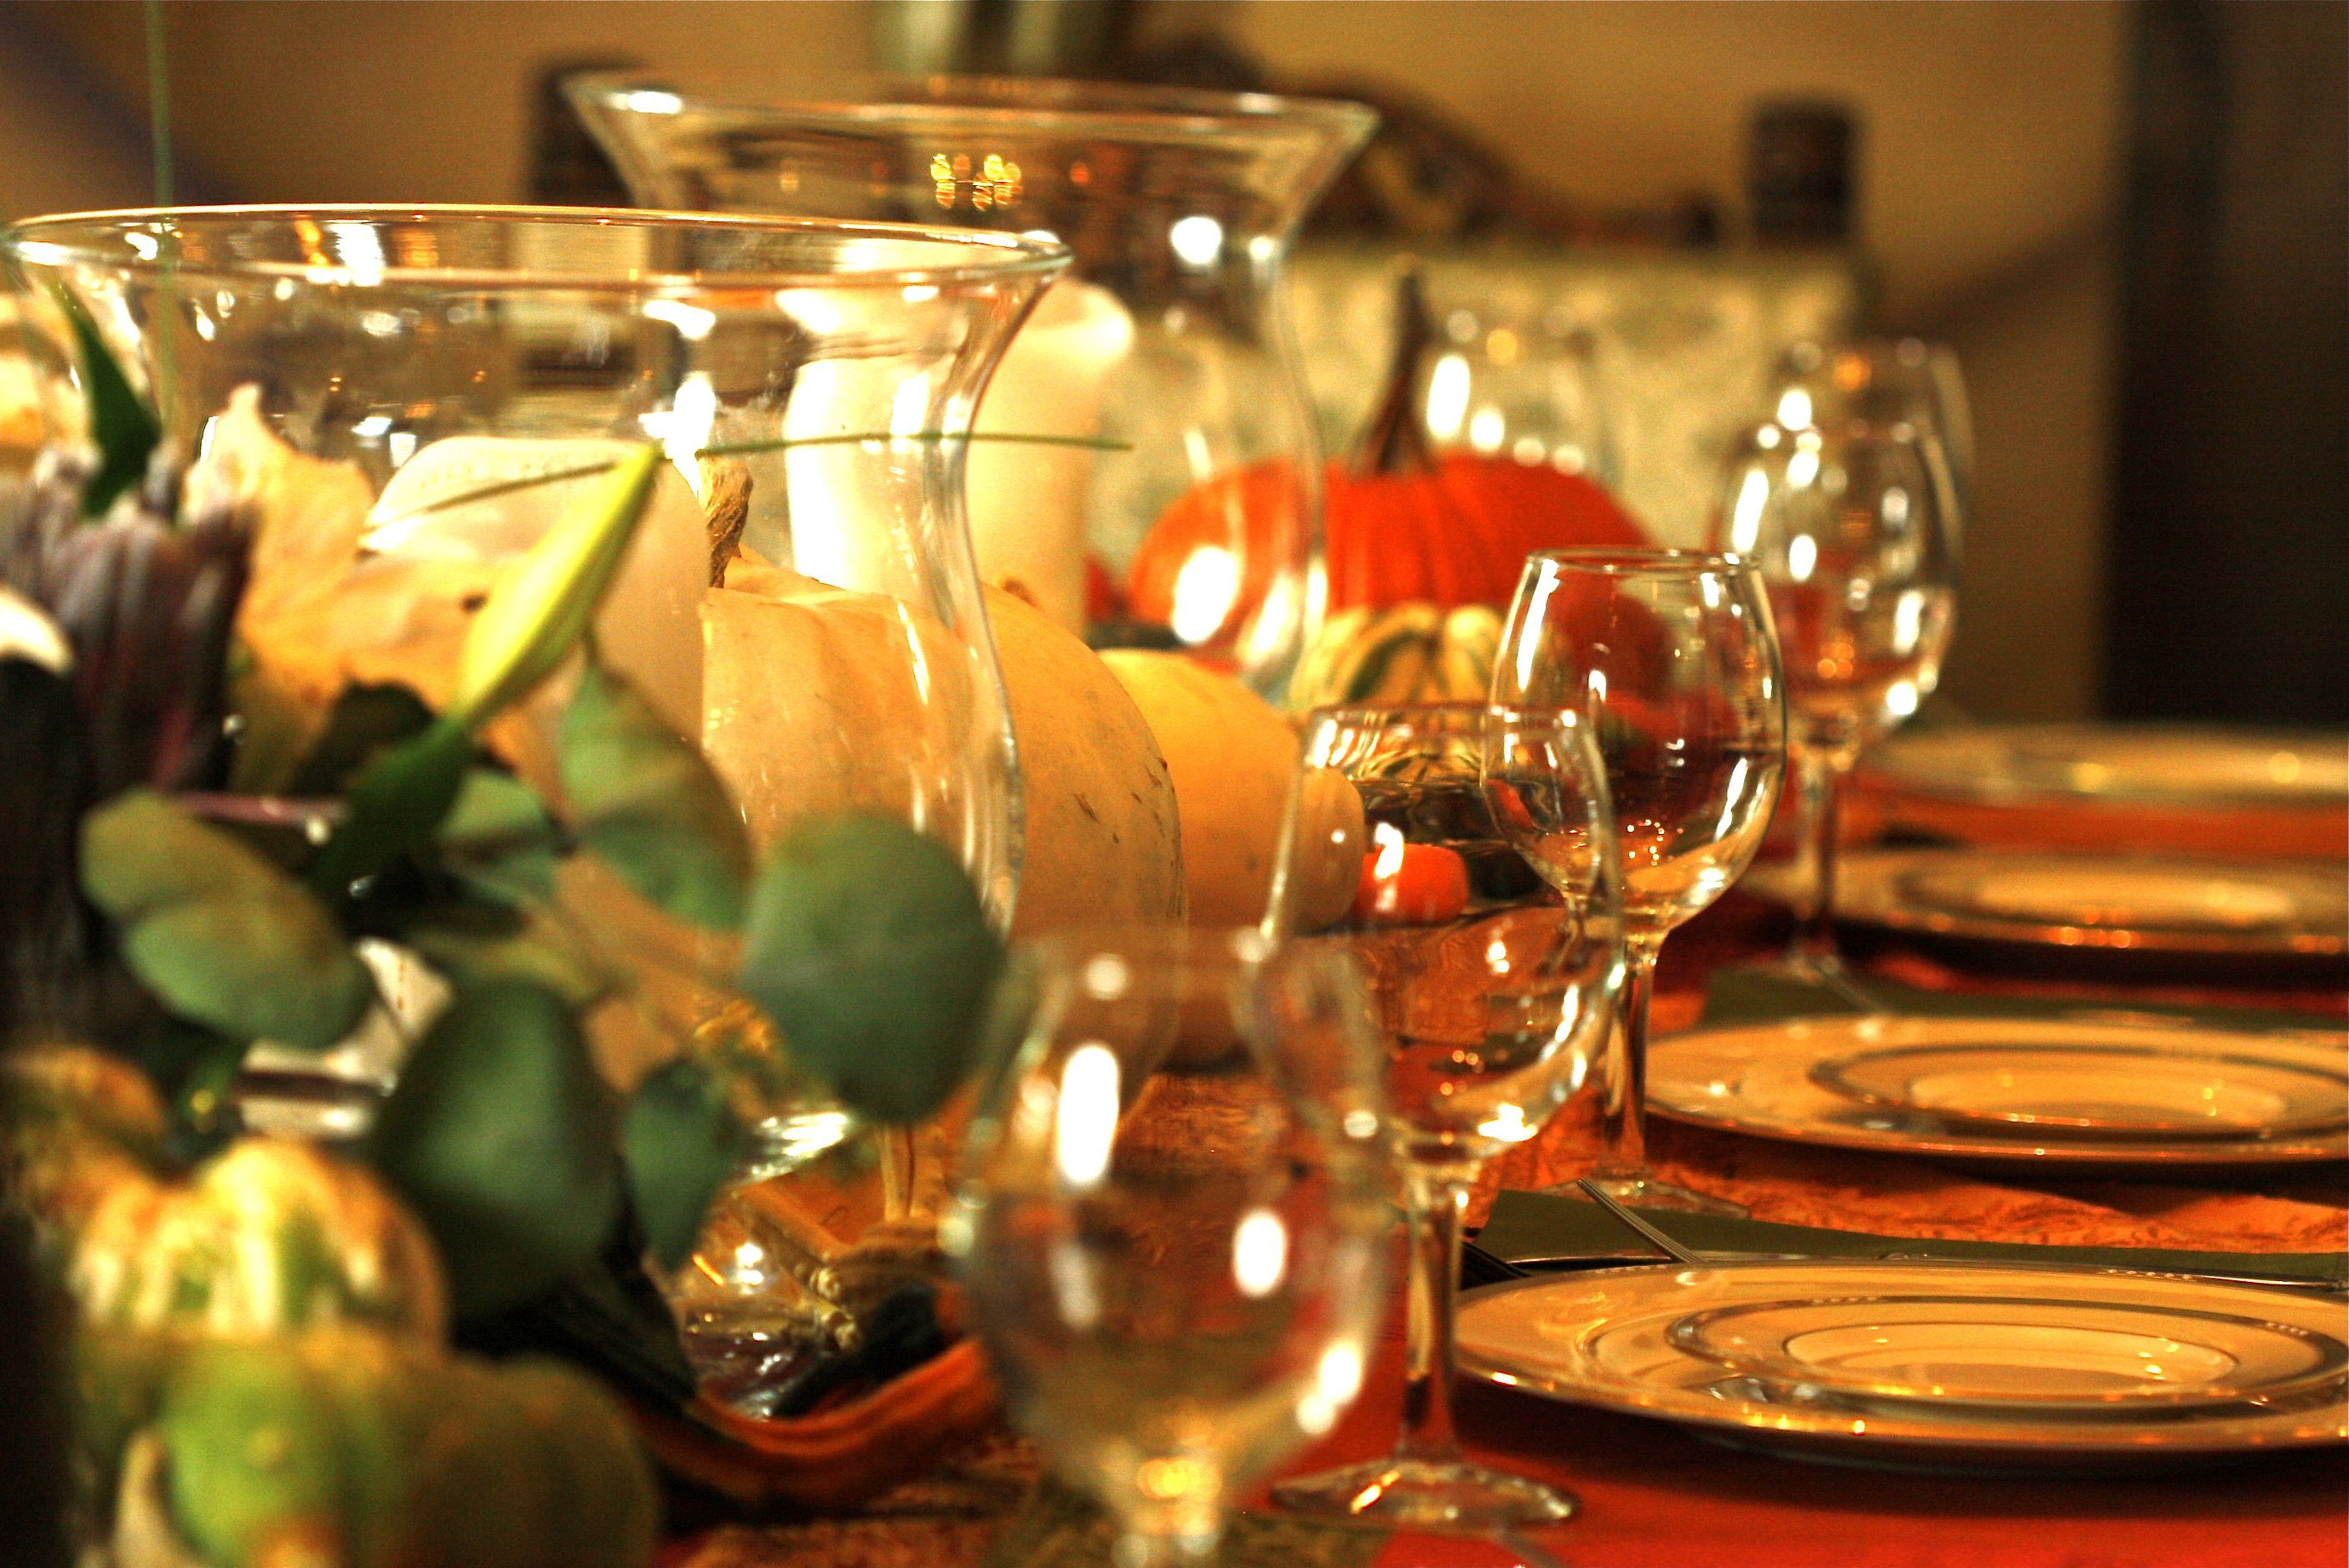 Harvest Feast Table Setting & Harvest Feast Table Setting | Ali in the Valley | Pinterest ...